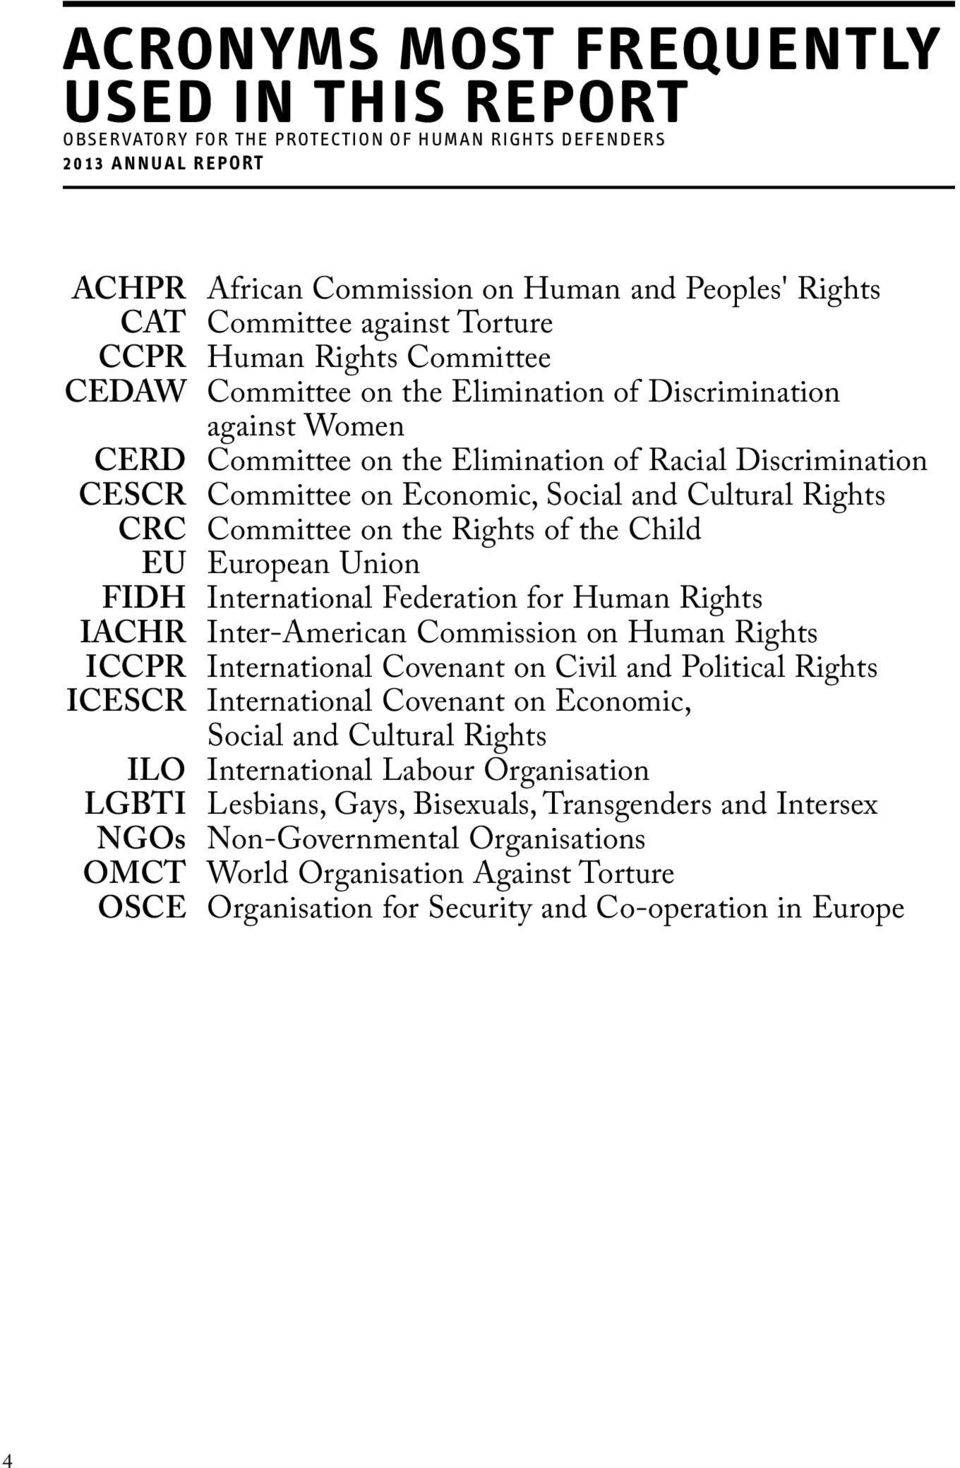 and Cultural Rights CRC Committee on the Rights of the Child EU European Union FIDH International Federation for Human Rights IACHR Inter-American Commission on Human Rights ICCPR International